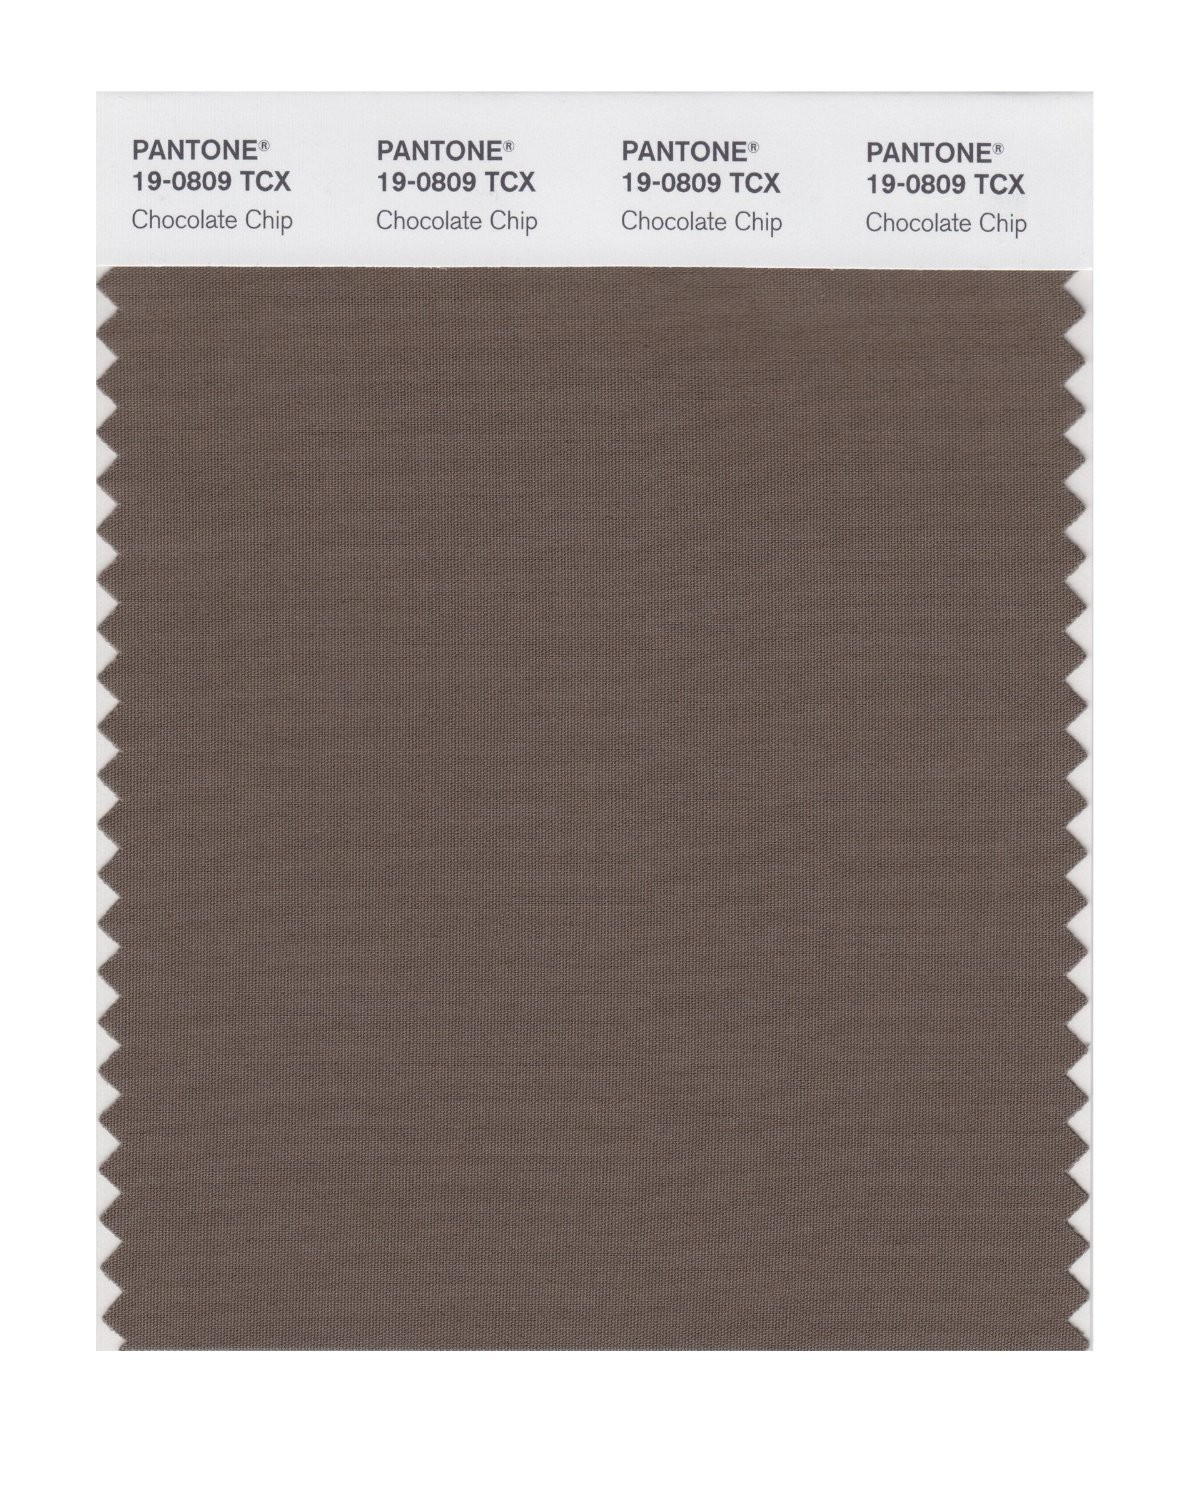 Pantone 19-0809 TCX Swatch Card Chocolate Chip